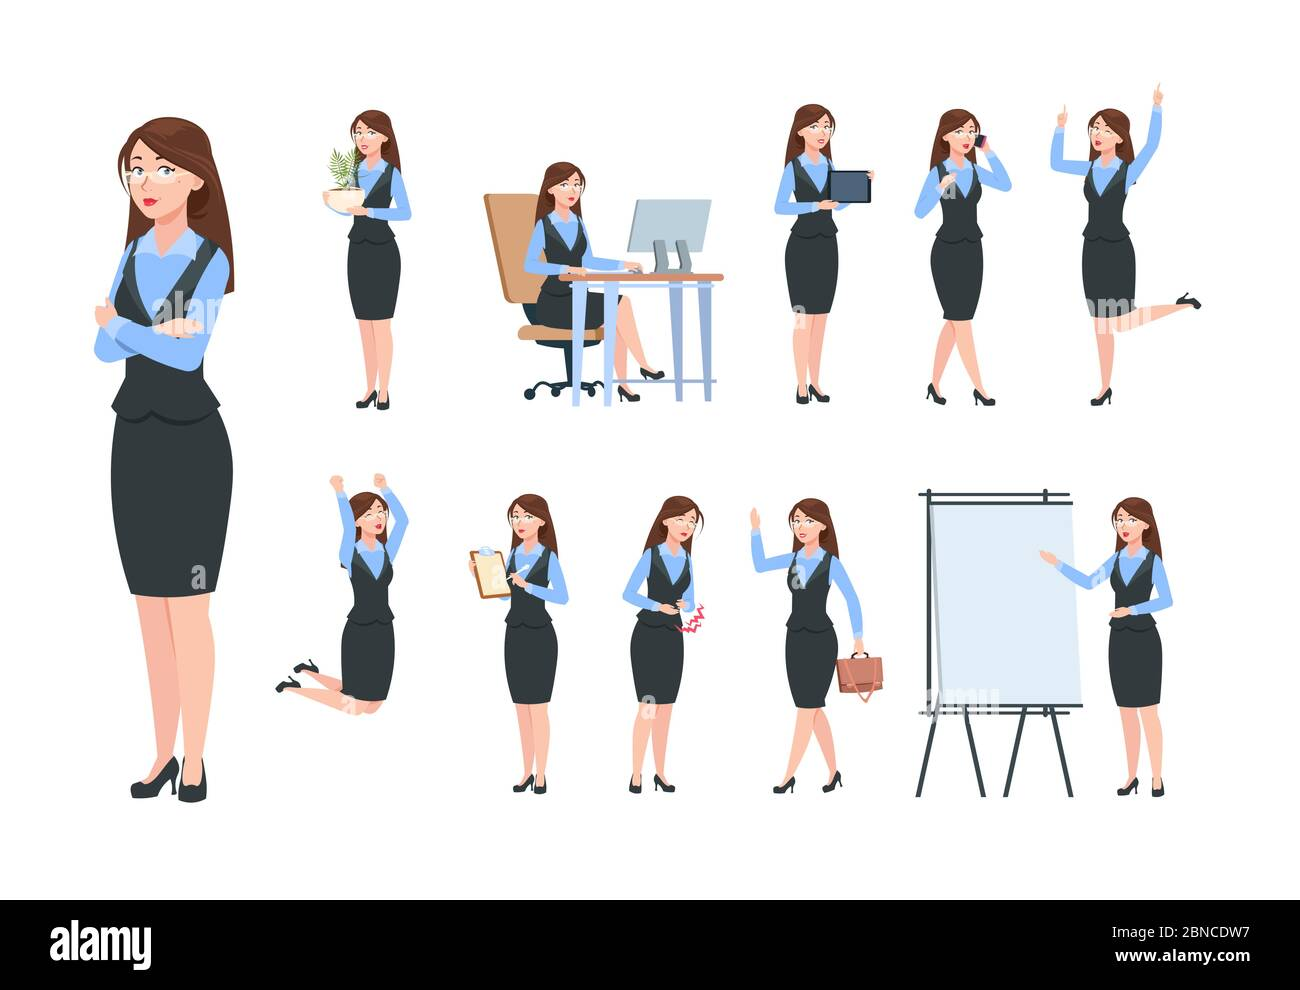 Professional Career Business Cartoon Woman High Resolution Stock Photography And Images Alamy